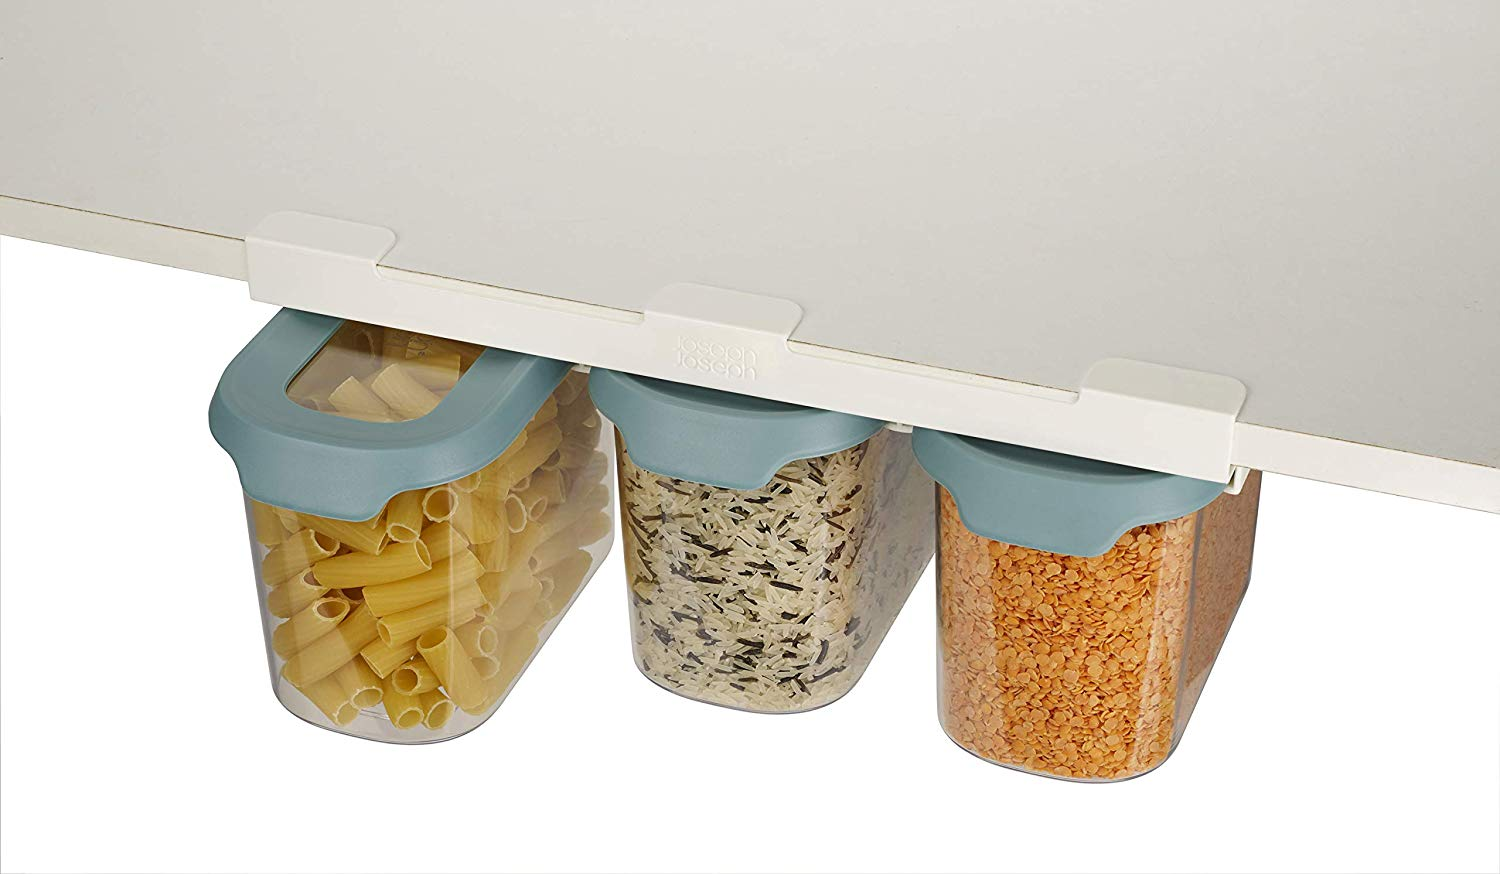 CupboardStore Airtight Food Container Set